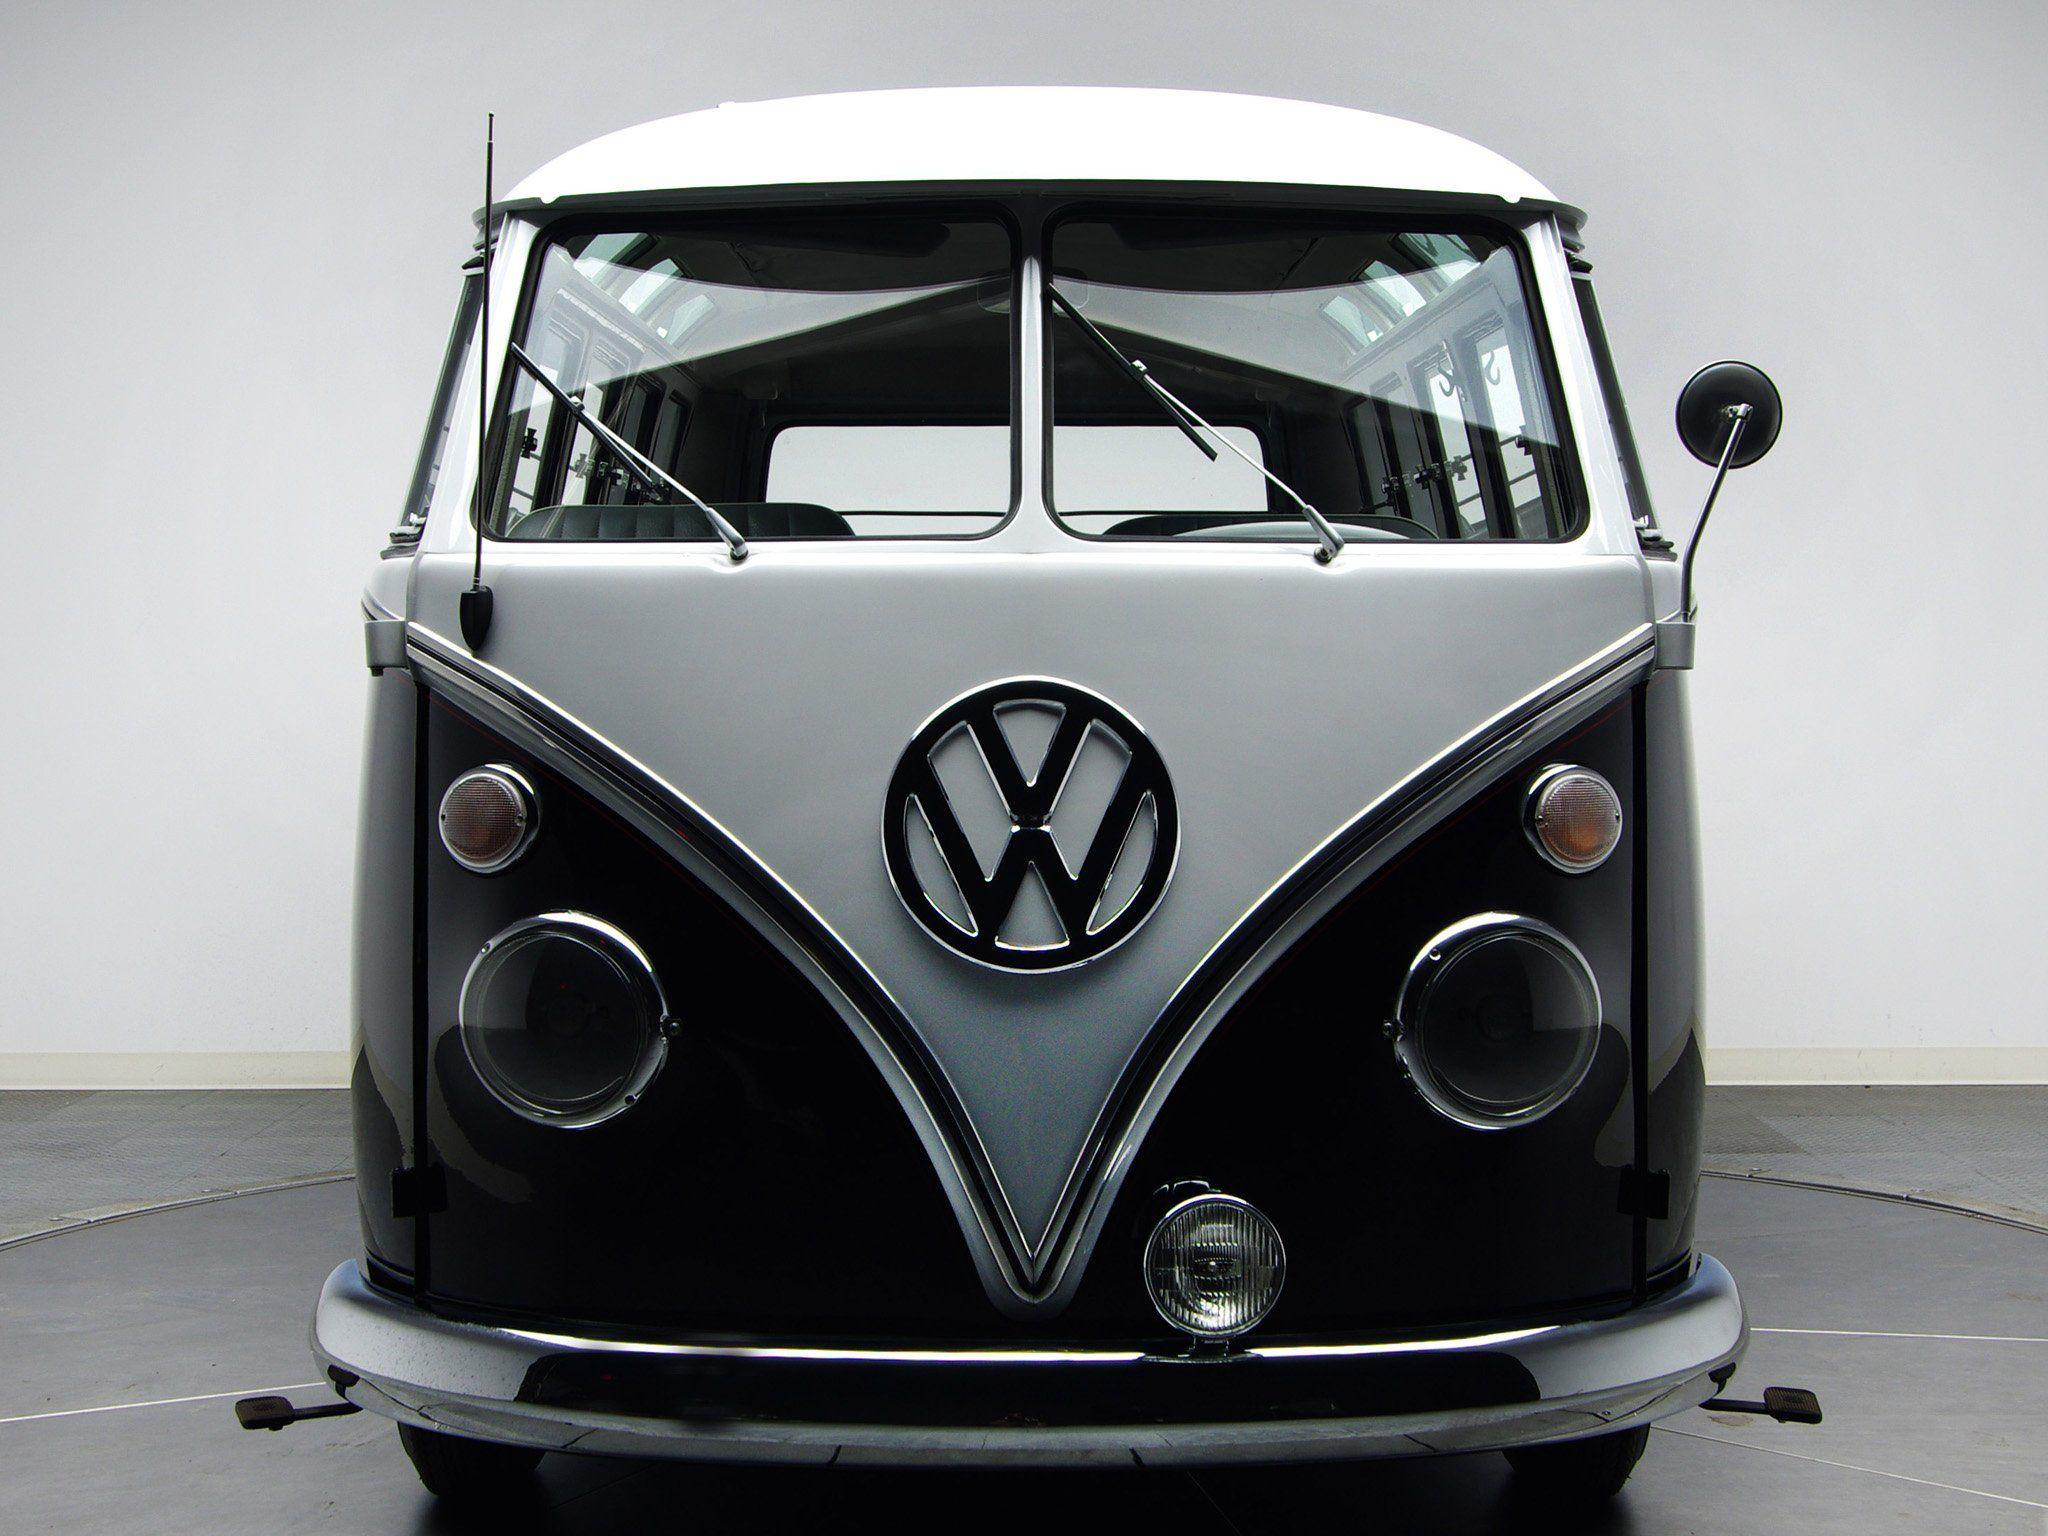 Mobil Vw Bus Wallpapers Hd Wallpaper Cave